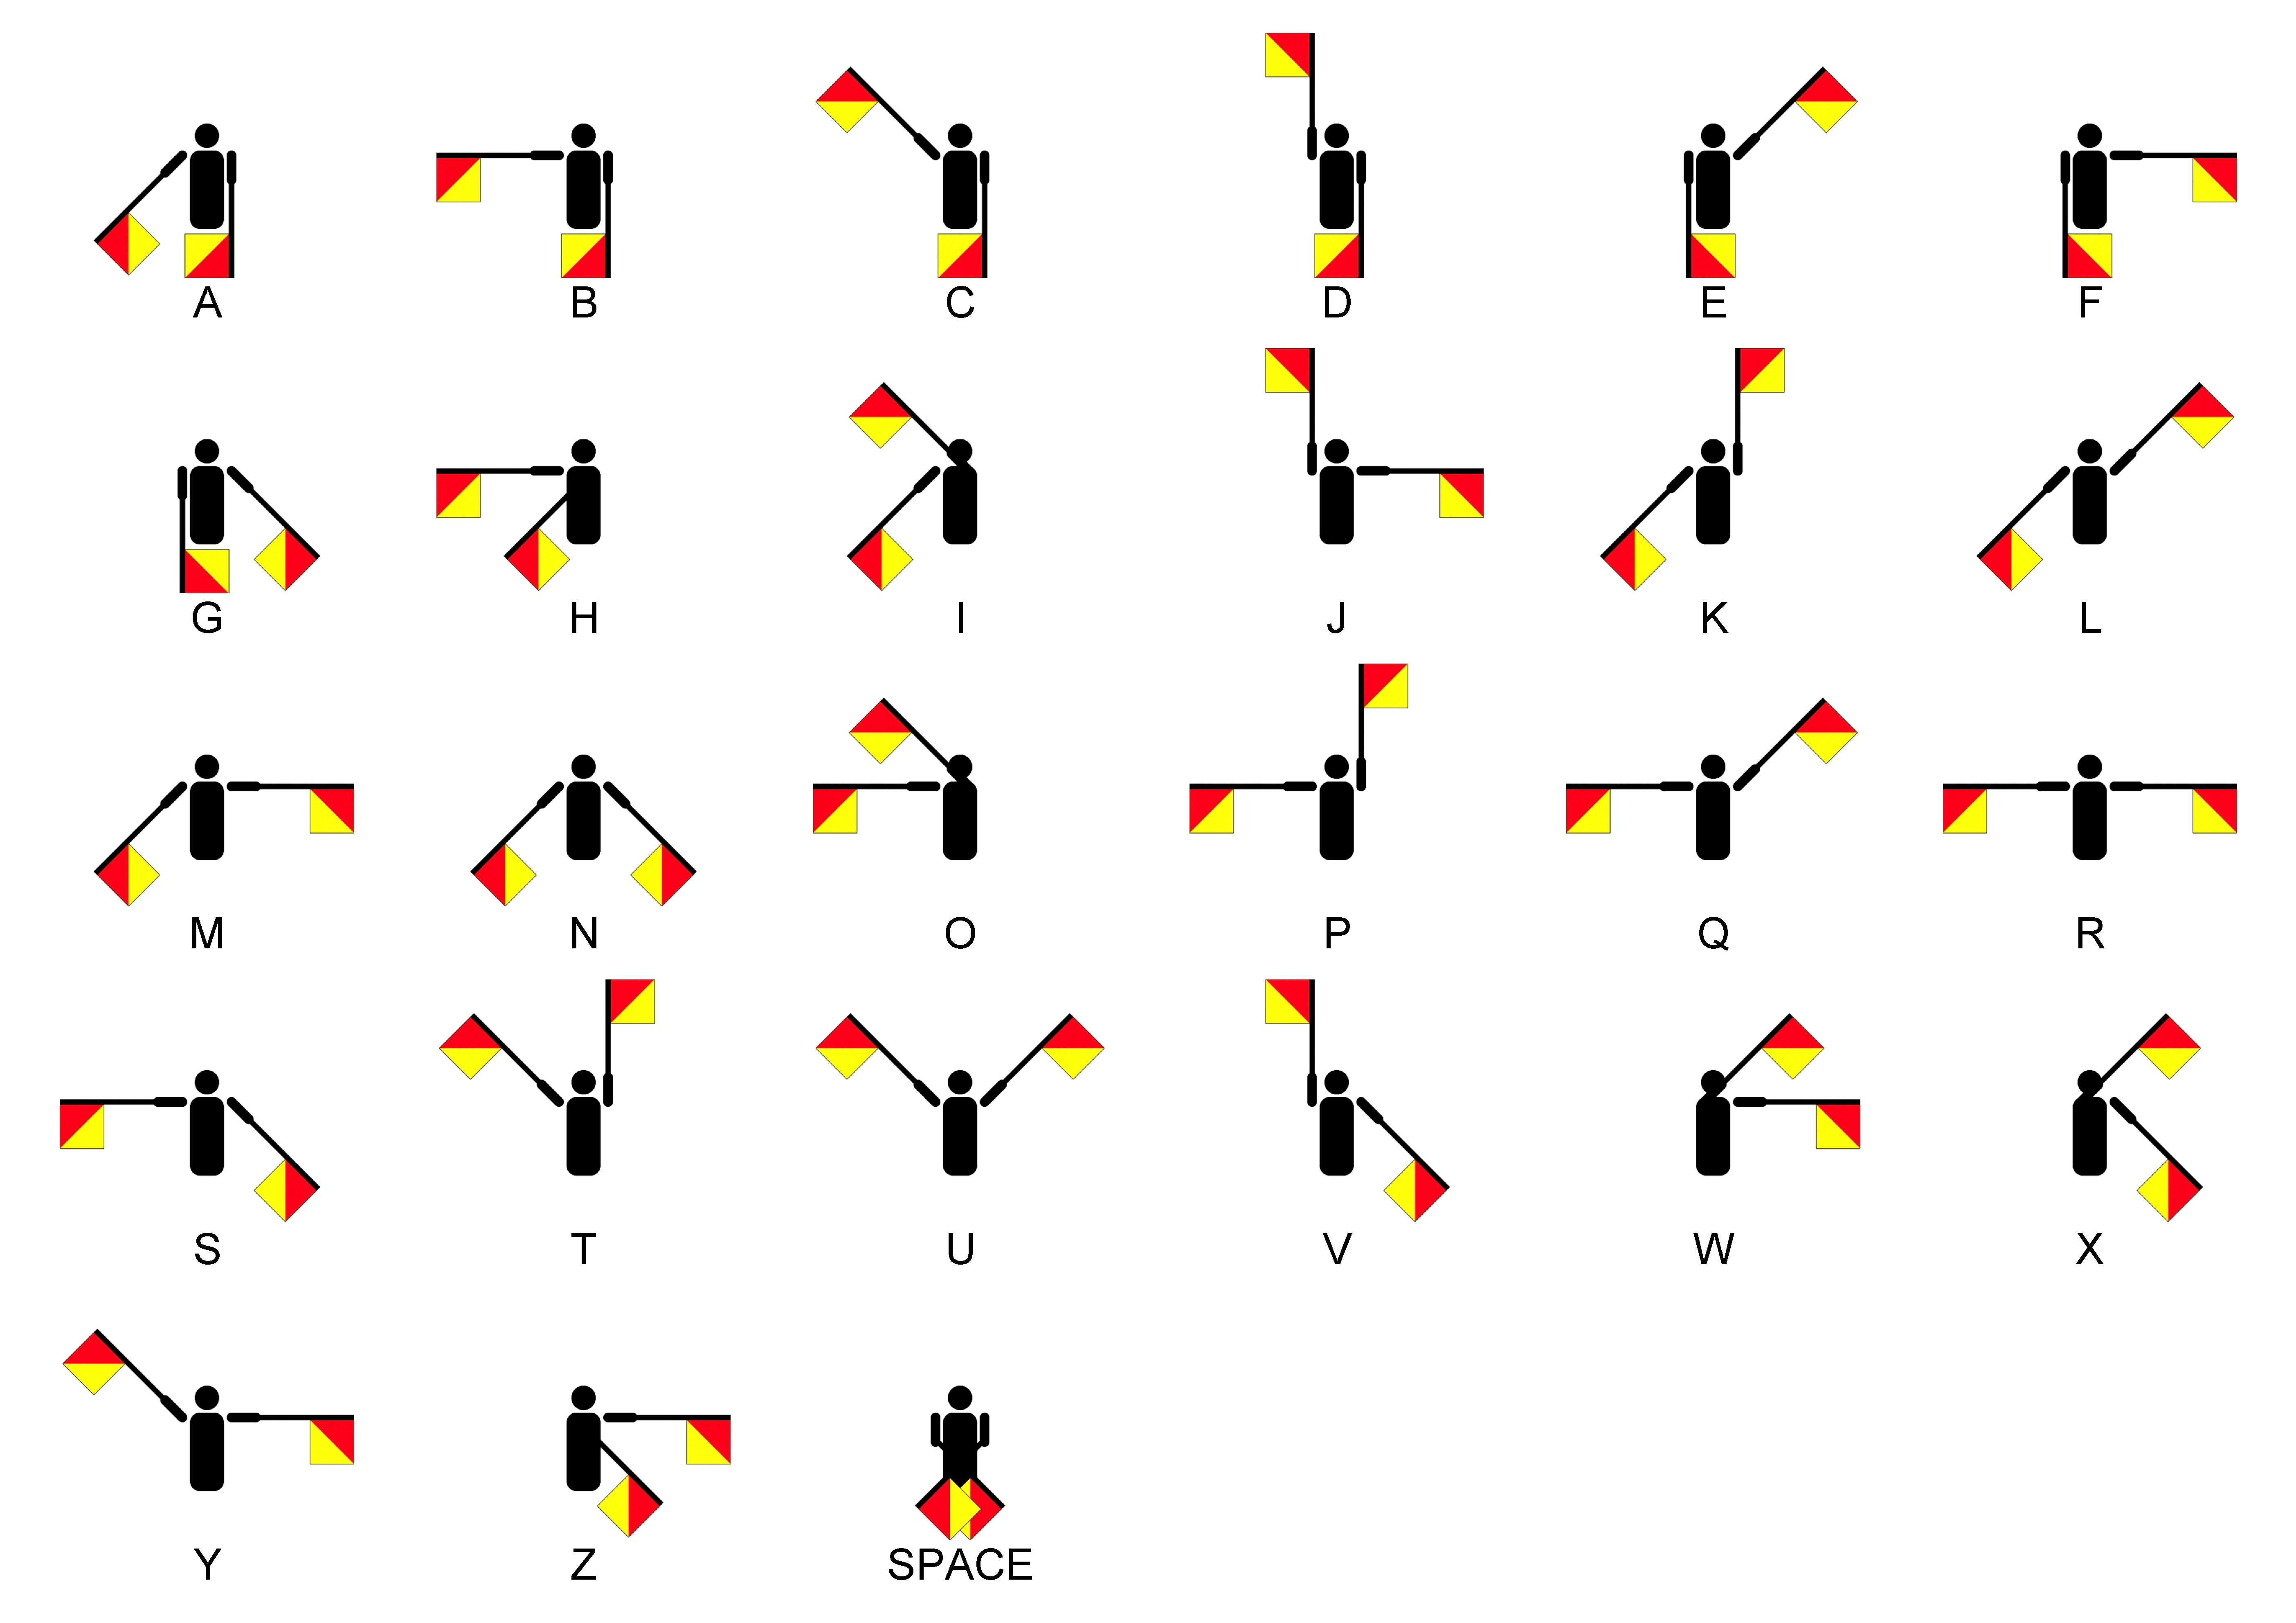 A To Z Alphabets With Pictures Chart: Semaphore Signals A-Z.jpg - Wikimedia Commons,Chart